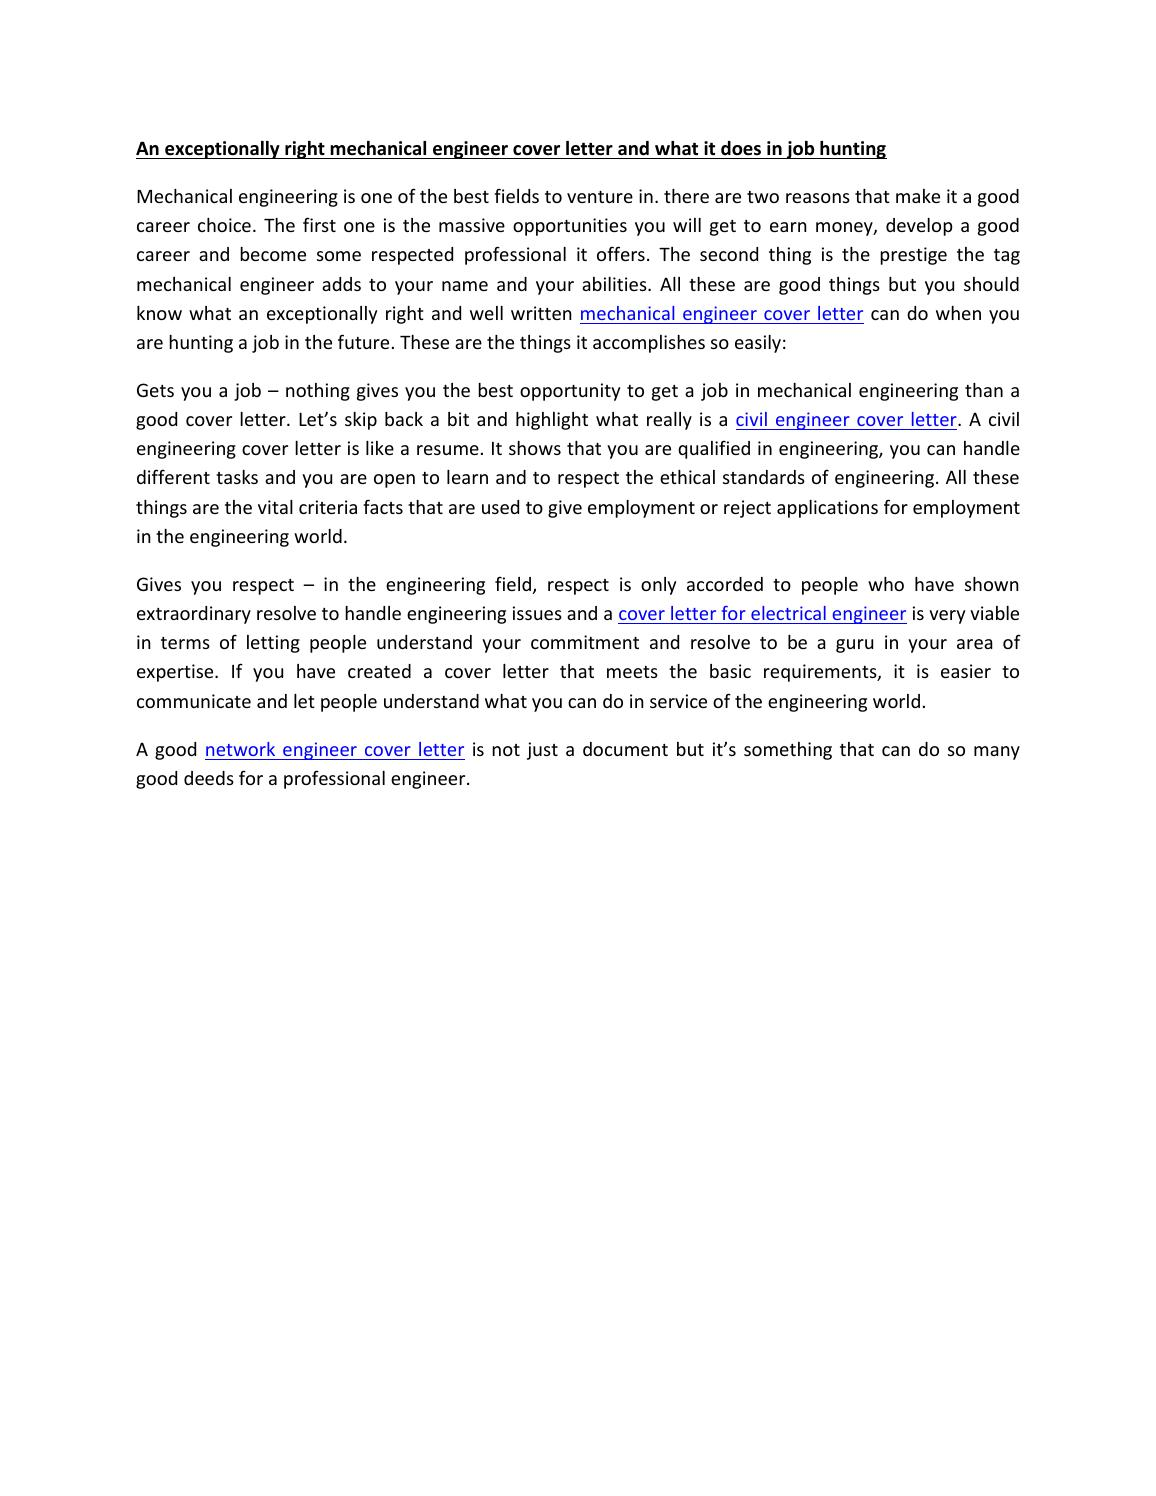 An exceptionally right mechanical engineer cover letter and what it ...